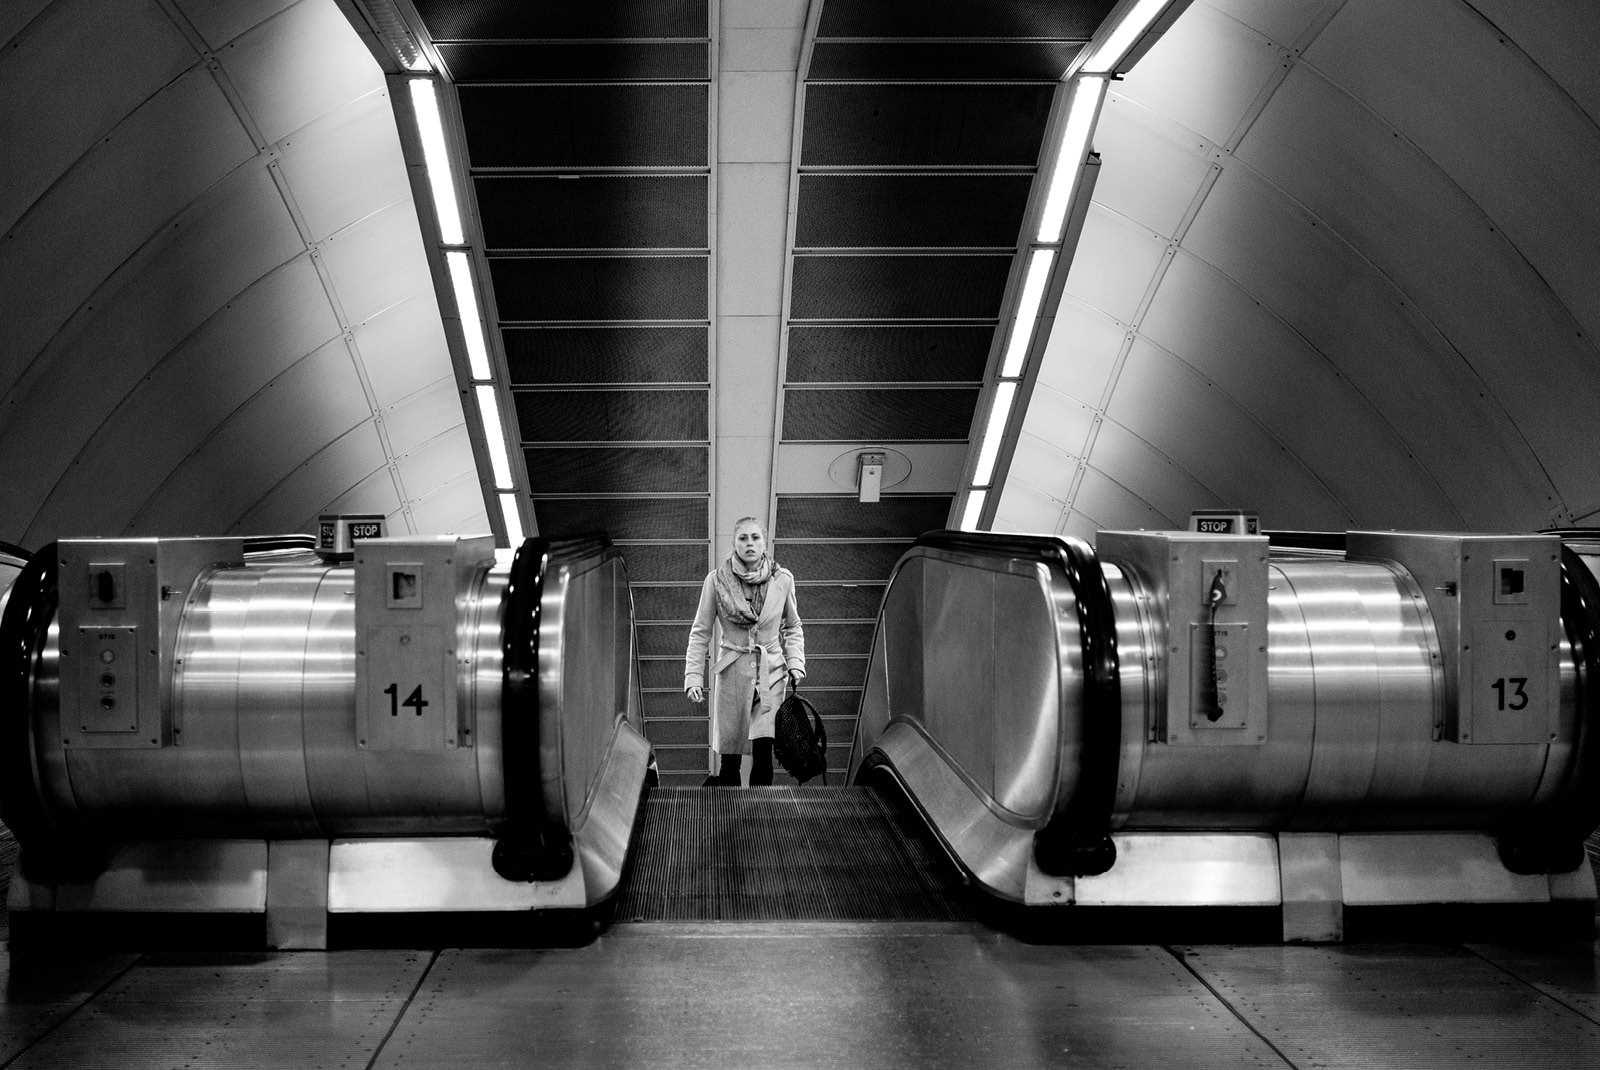 24-hours-on-the-london-underground-night-tube-street-photography-tarikahmet-escalators